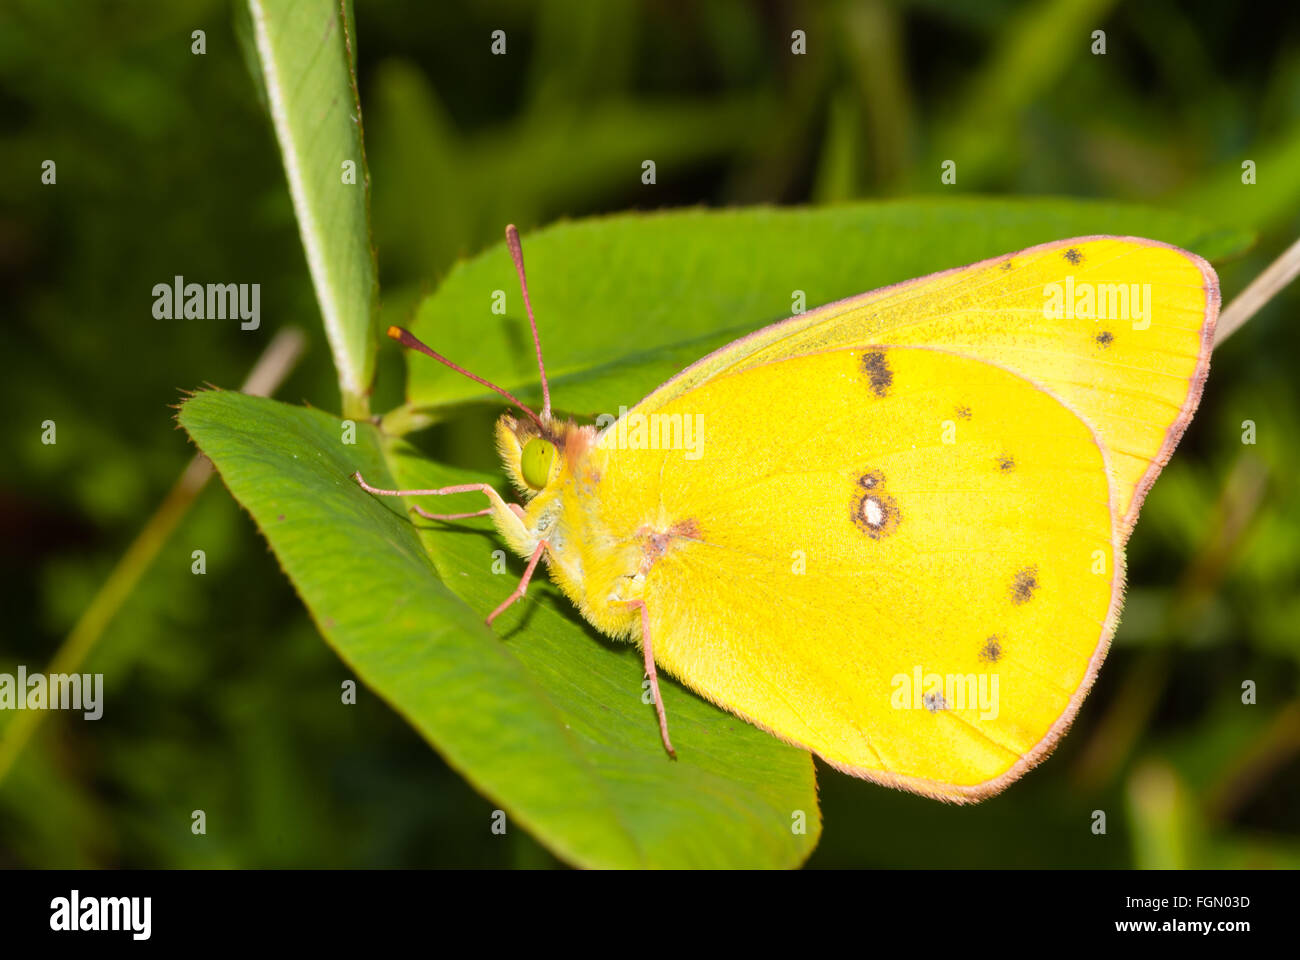 Clouded sulfur butterfly, Colias philodice, perched on a leaf, Parrot's Bay Conservation Area, Ontario, Canada - Stock Image